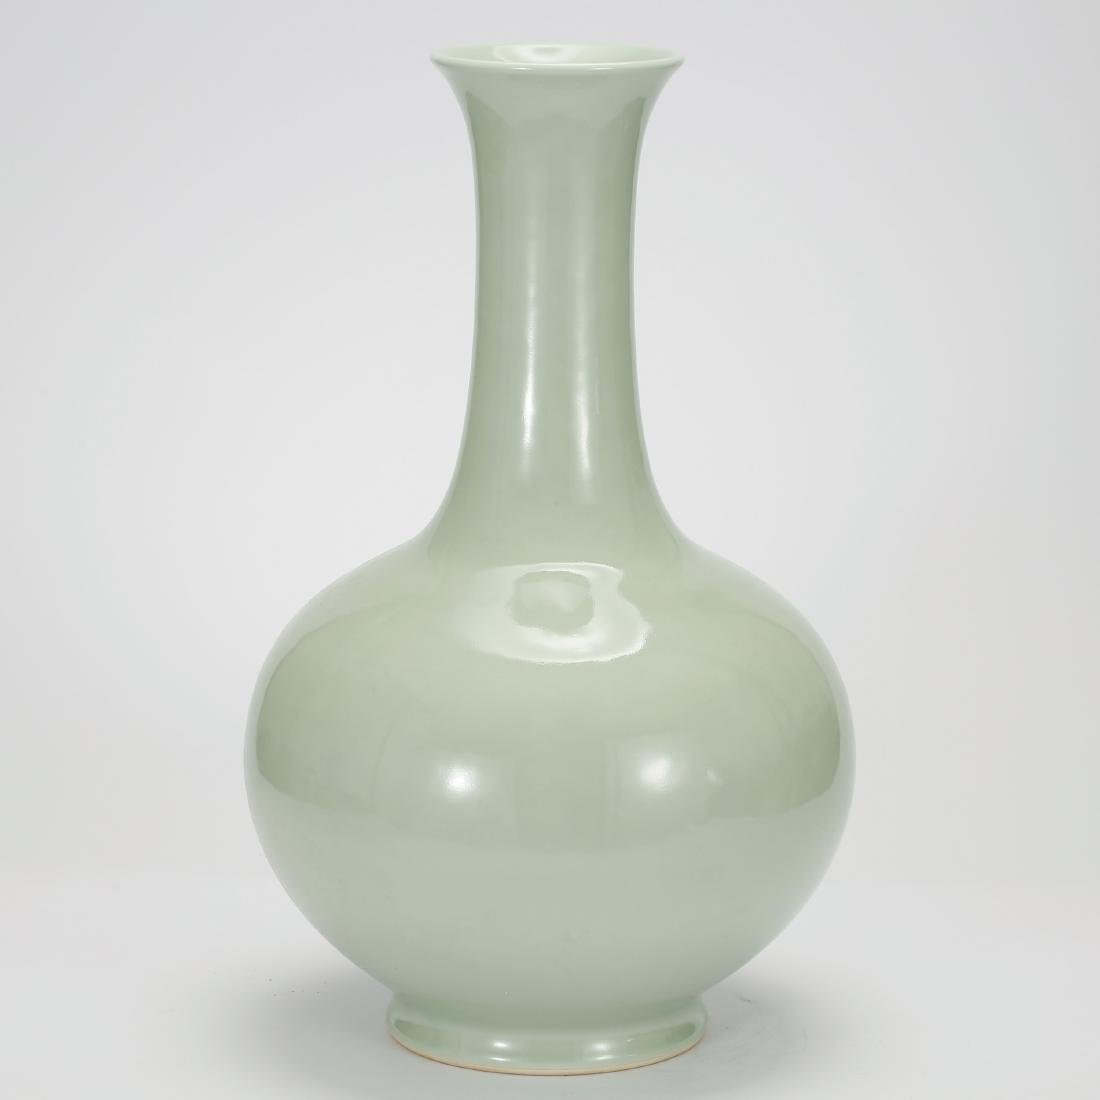 CHINESE CELADON GLAZED BOTTLE VASE QING DYNASTY